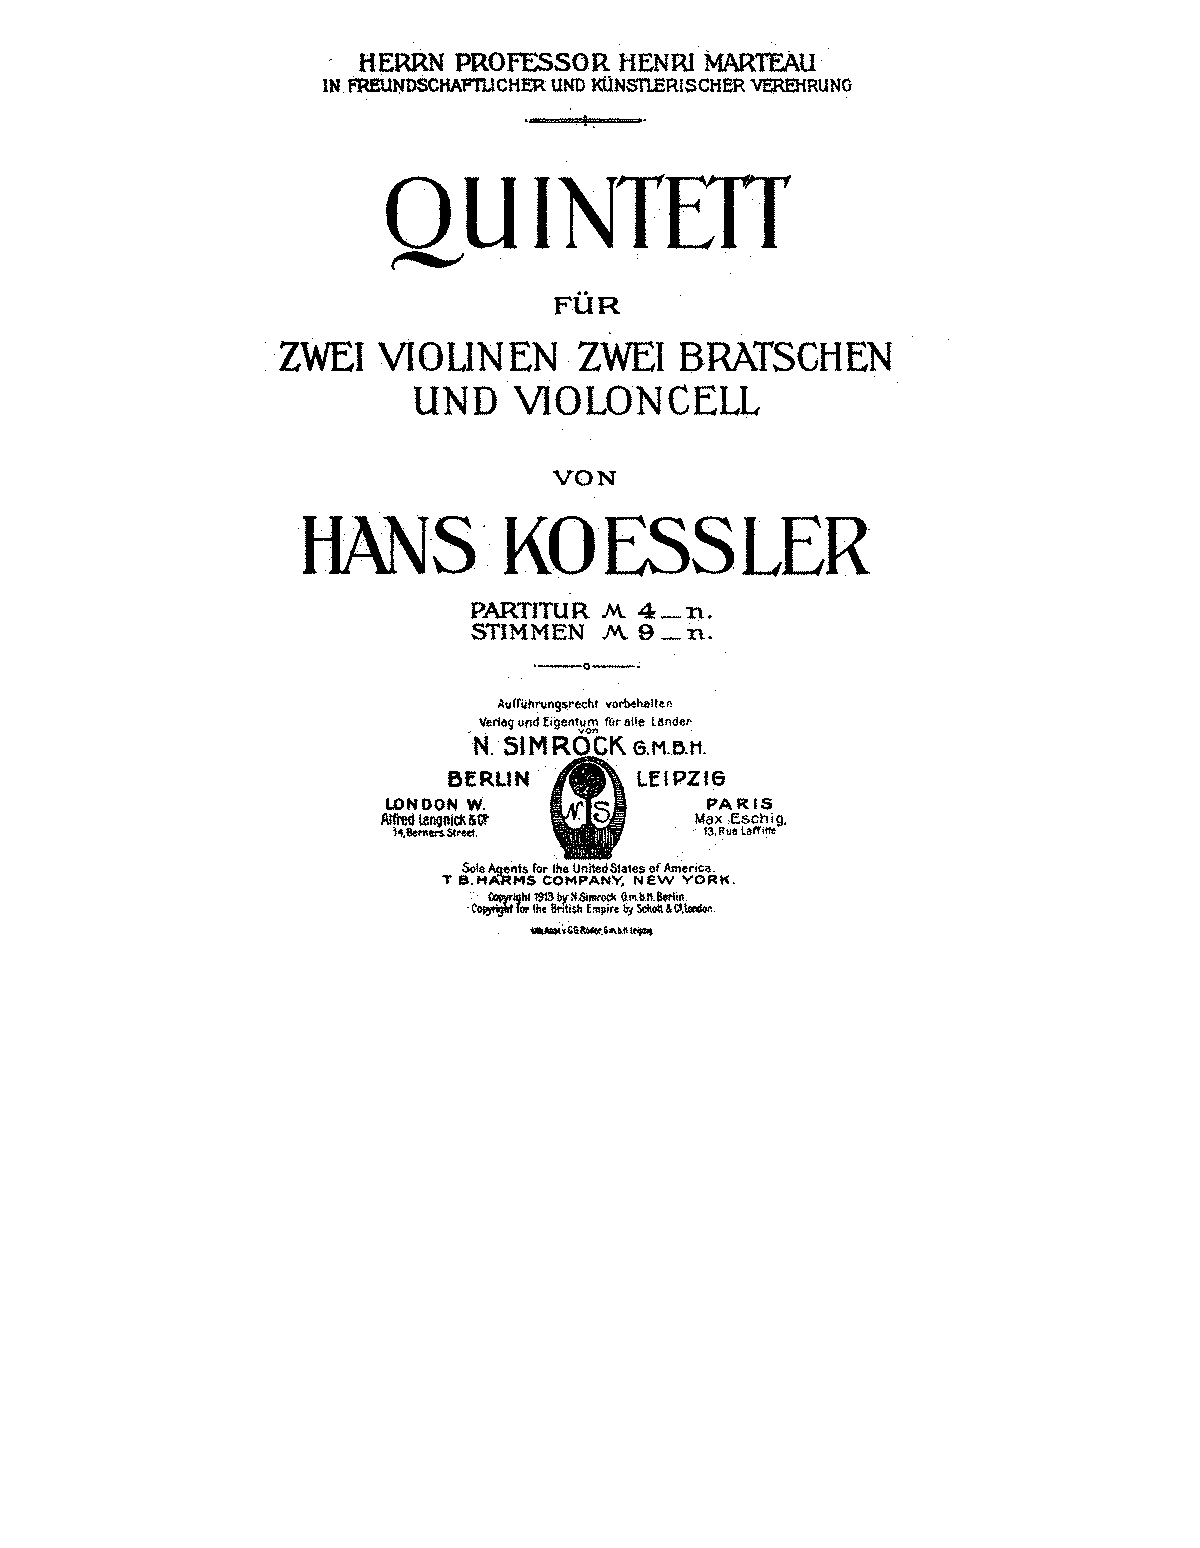 PMLP56825-Koessler - Quintet for 2 Violins 2 Violas Cello in F major score.pdf